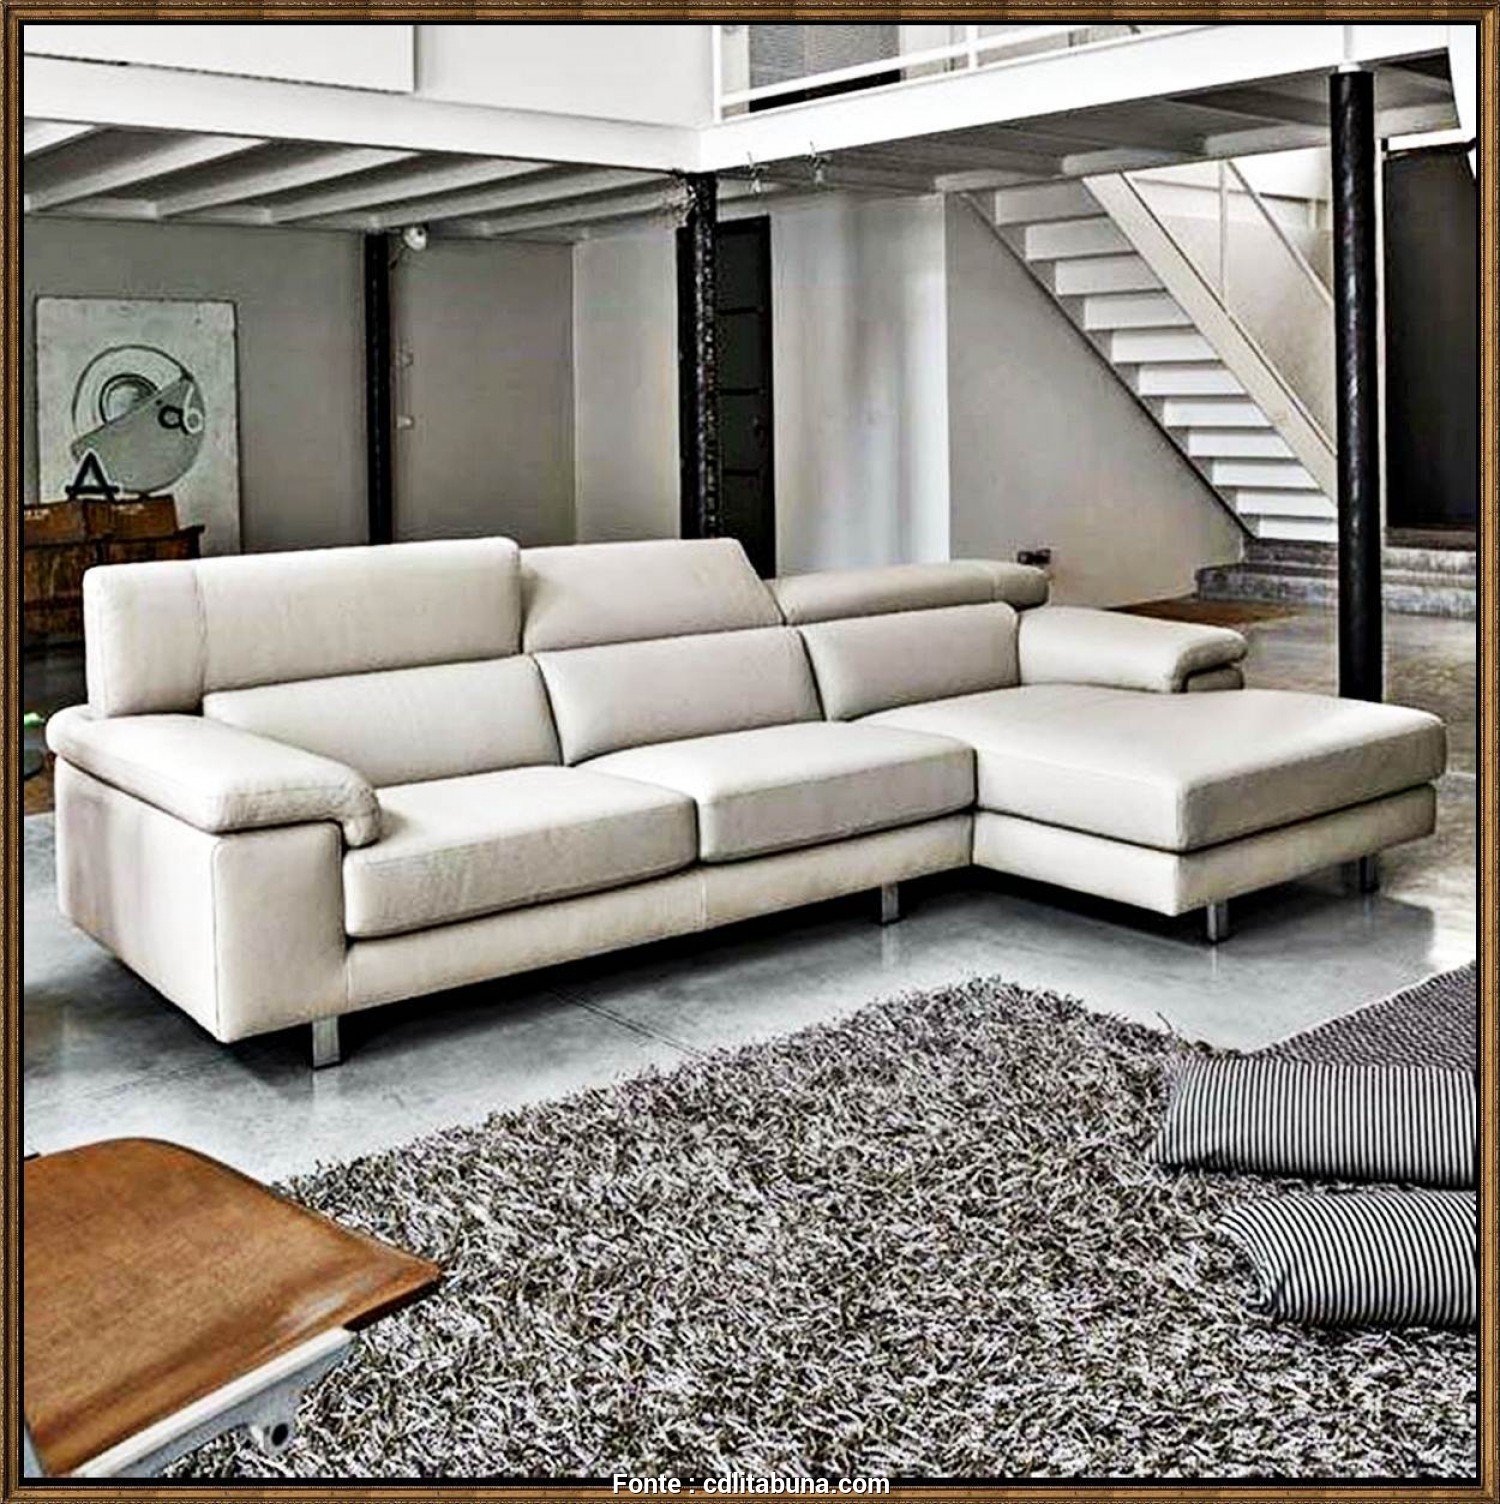 Modesto 4 Poltrone E Sofa Offerte - Keever For Congress